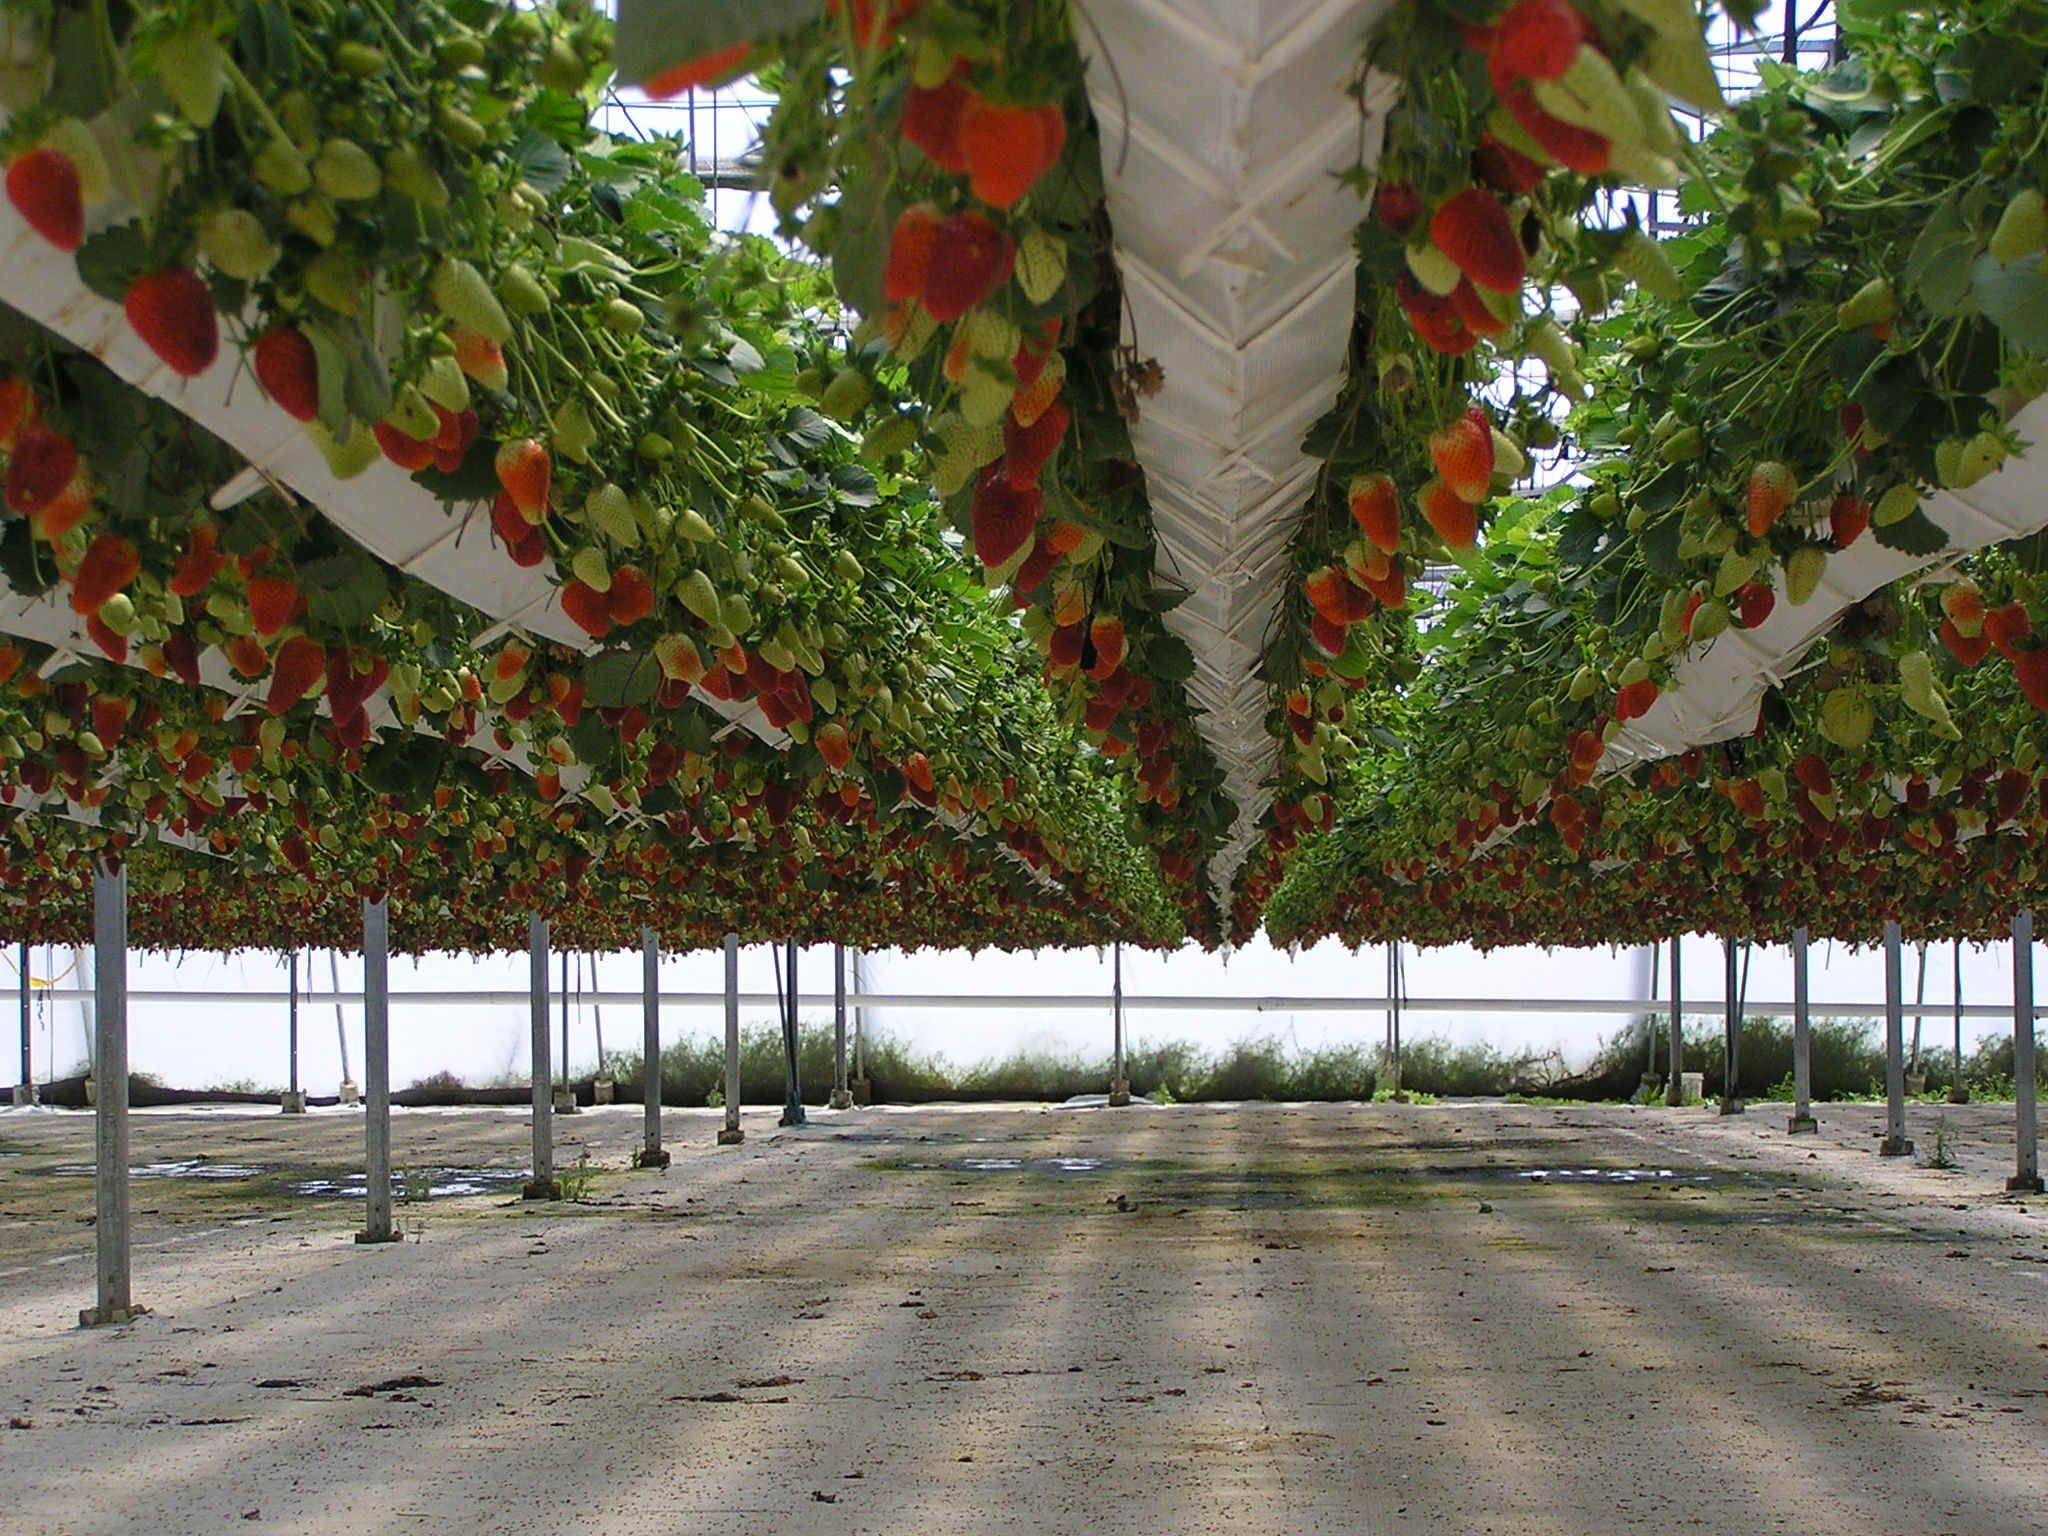 17 Best ideas about Hydroponic Strawberries on Pinterest